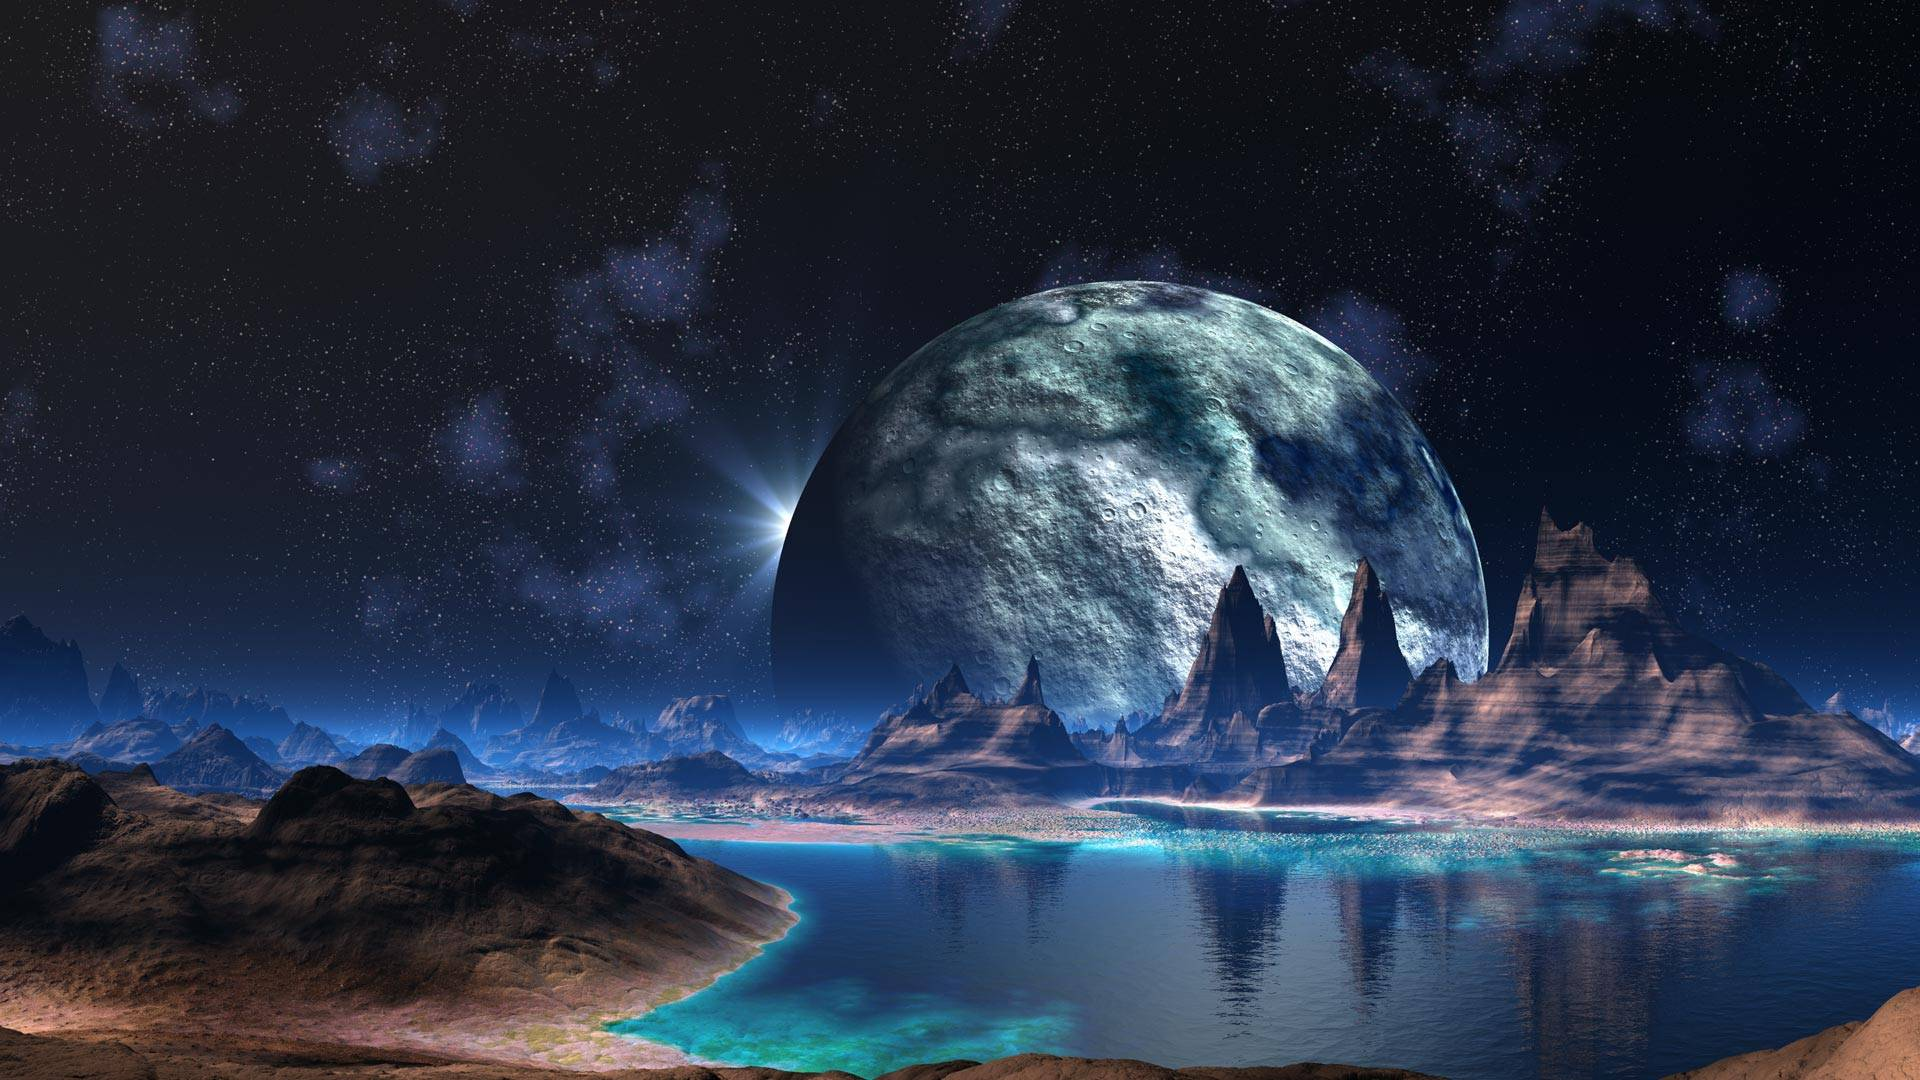 Alien Landscape Planet Stars Lake sci fi space reflection mountains 1920x1080